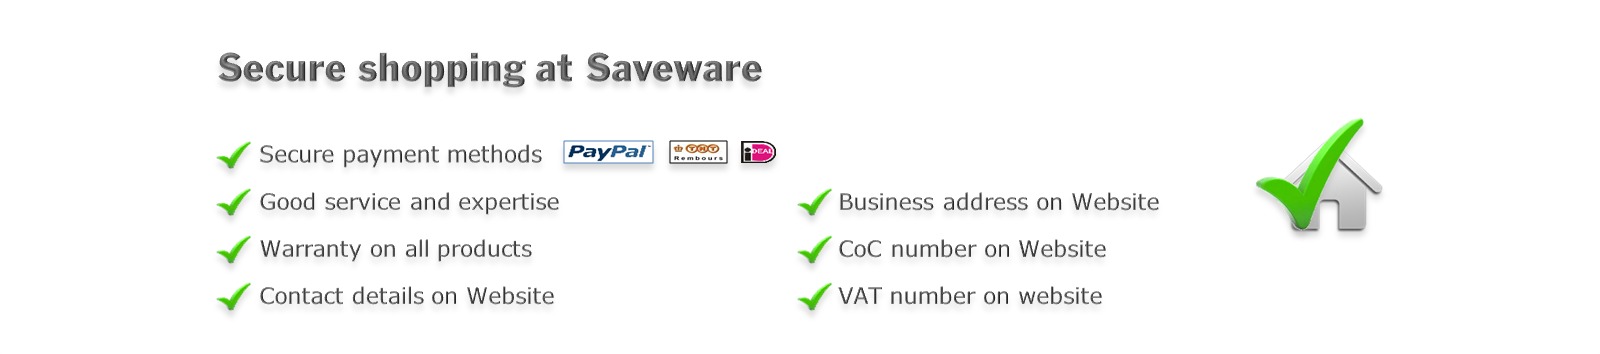 Secure shopping at Saveware